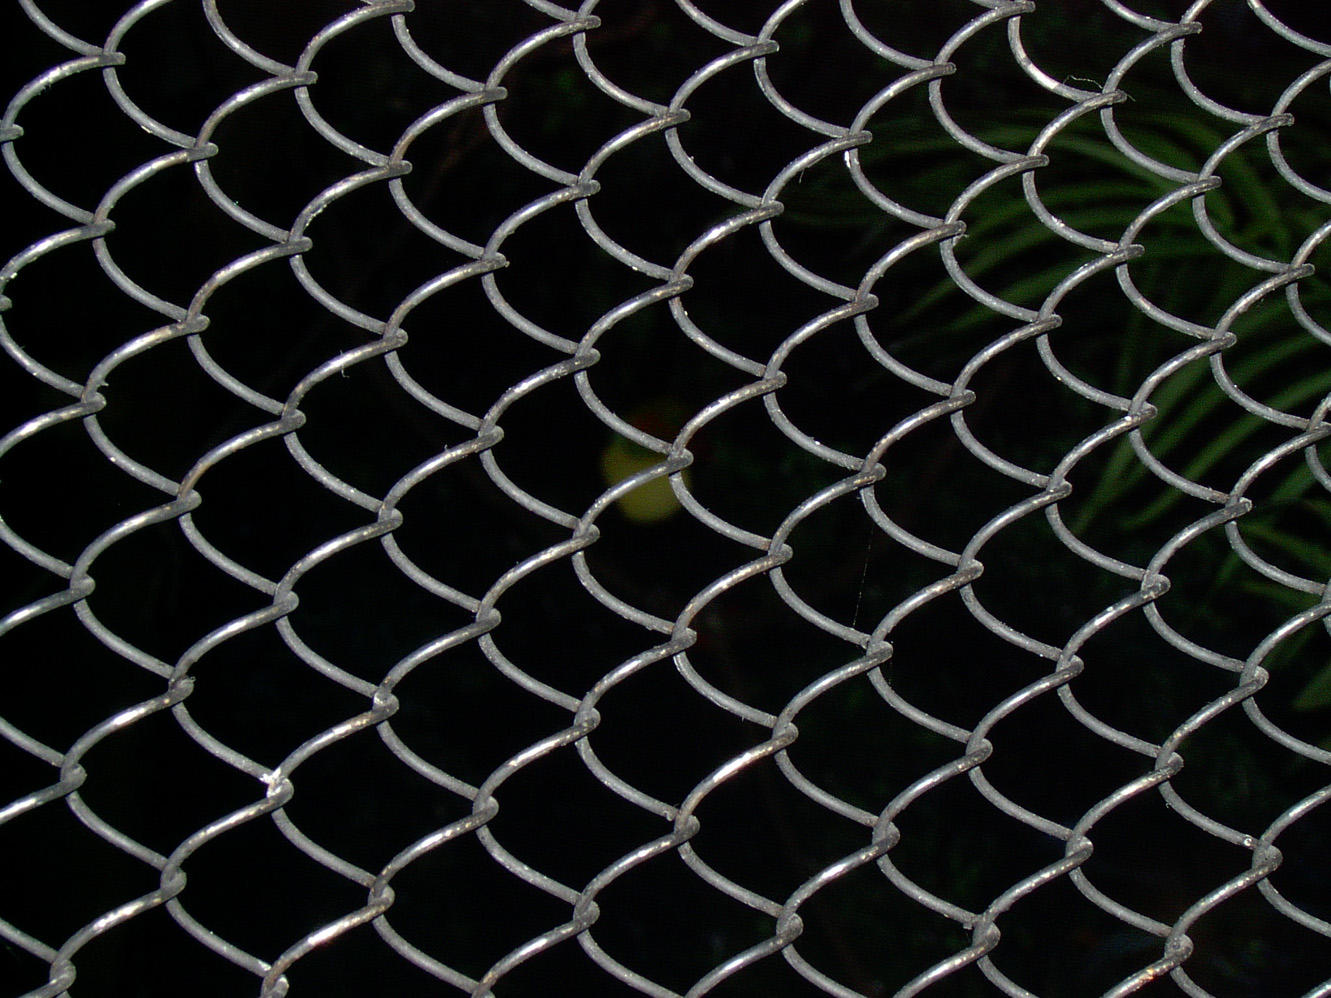 Chain Link Fence Wallpaper: Chain Link Fence By ManixTT-stock On DeviantArt